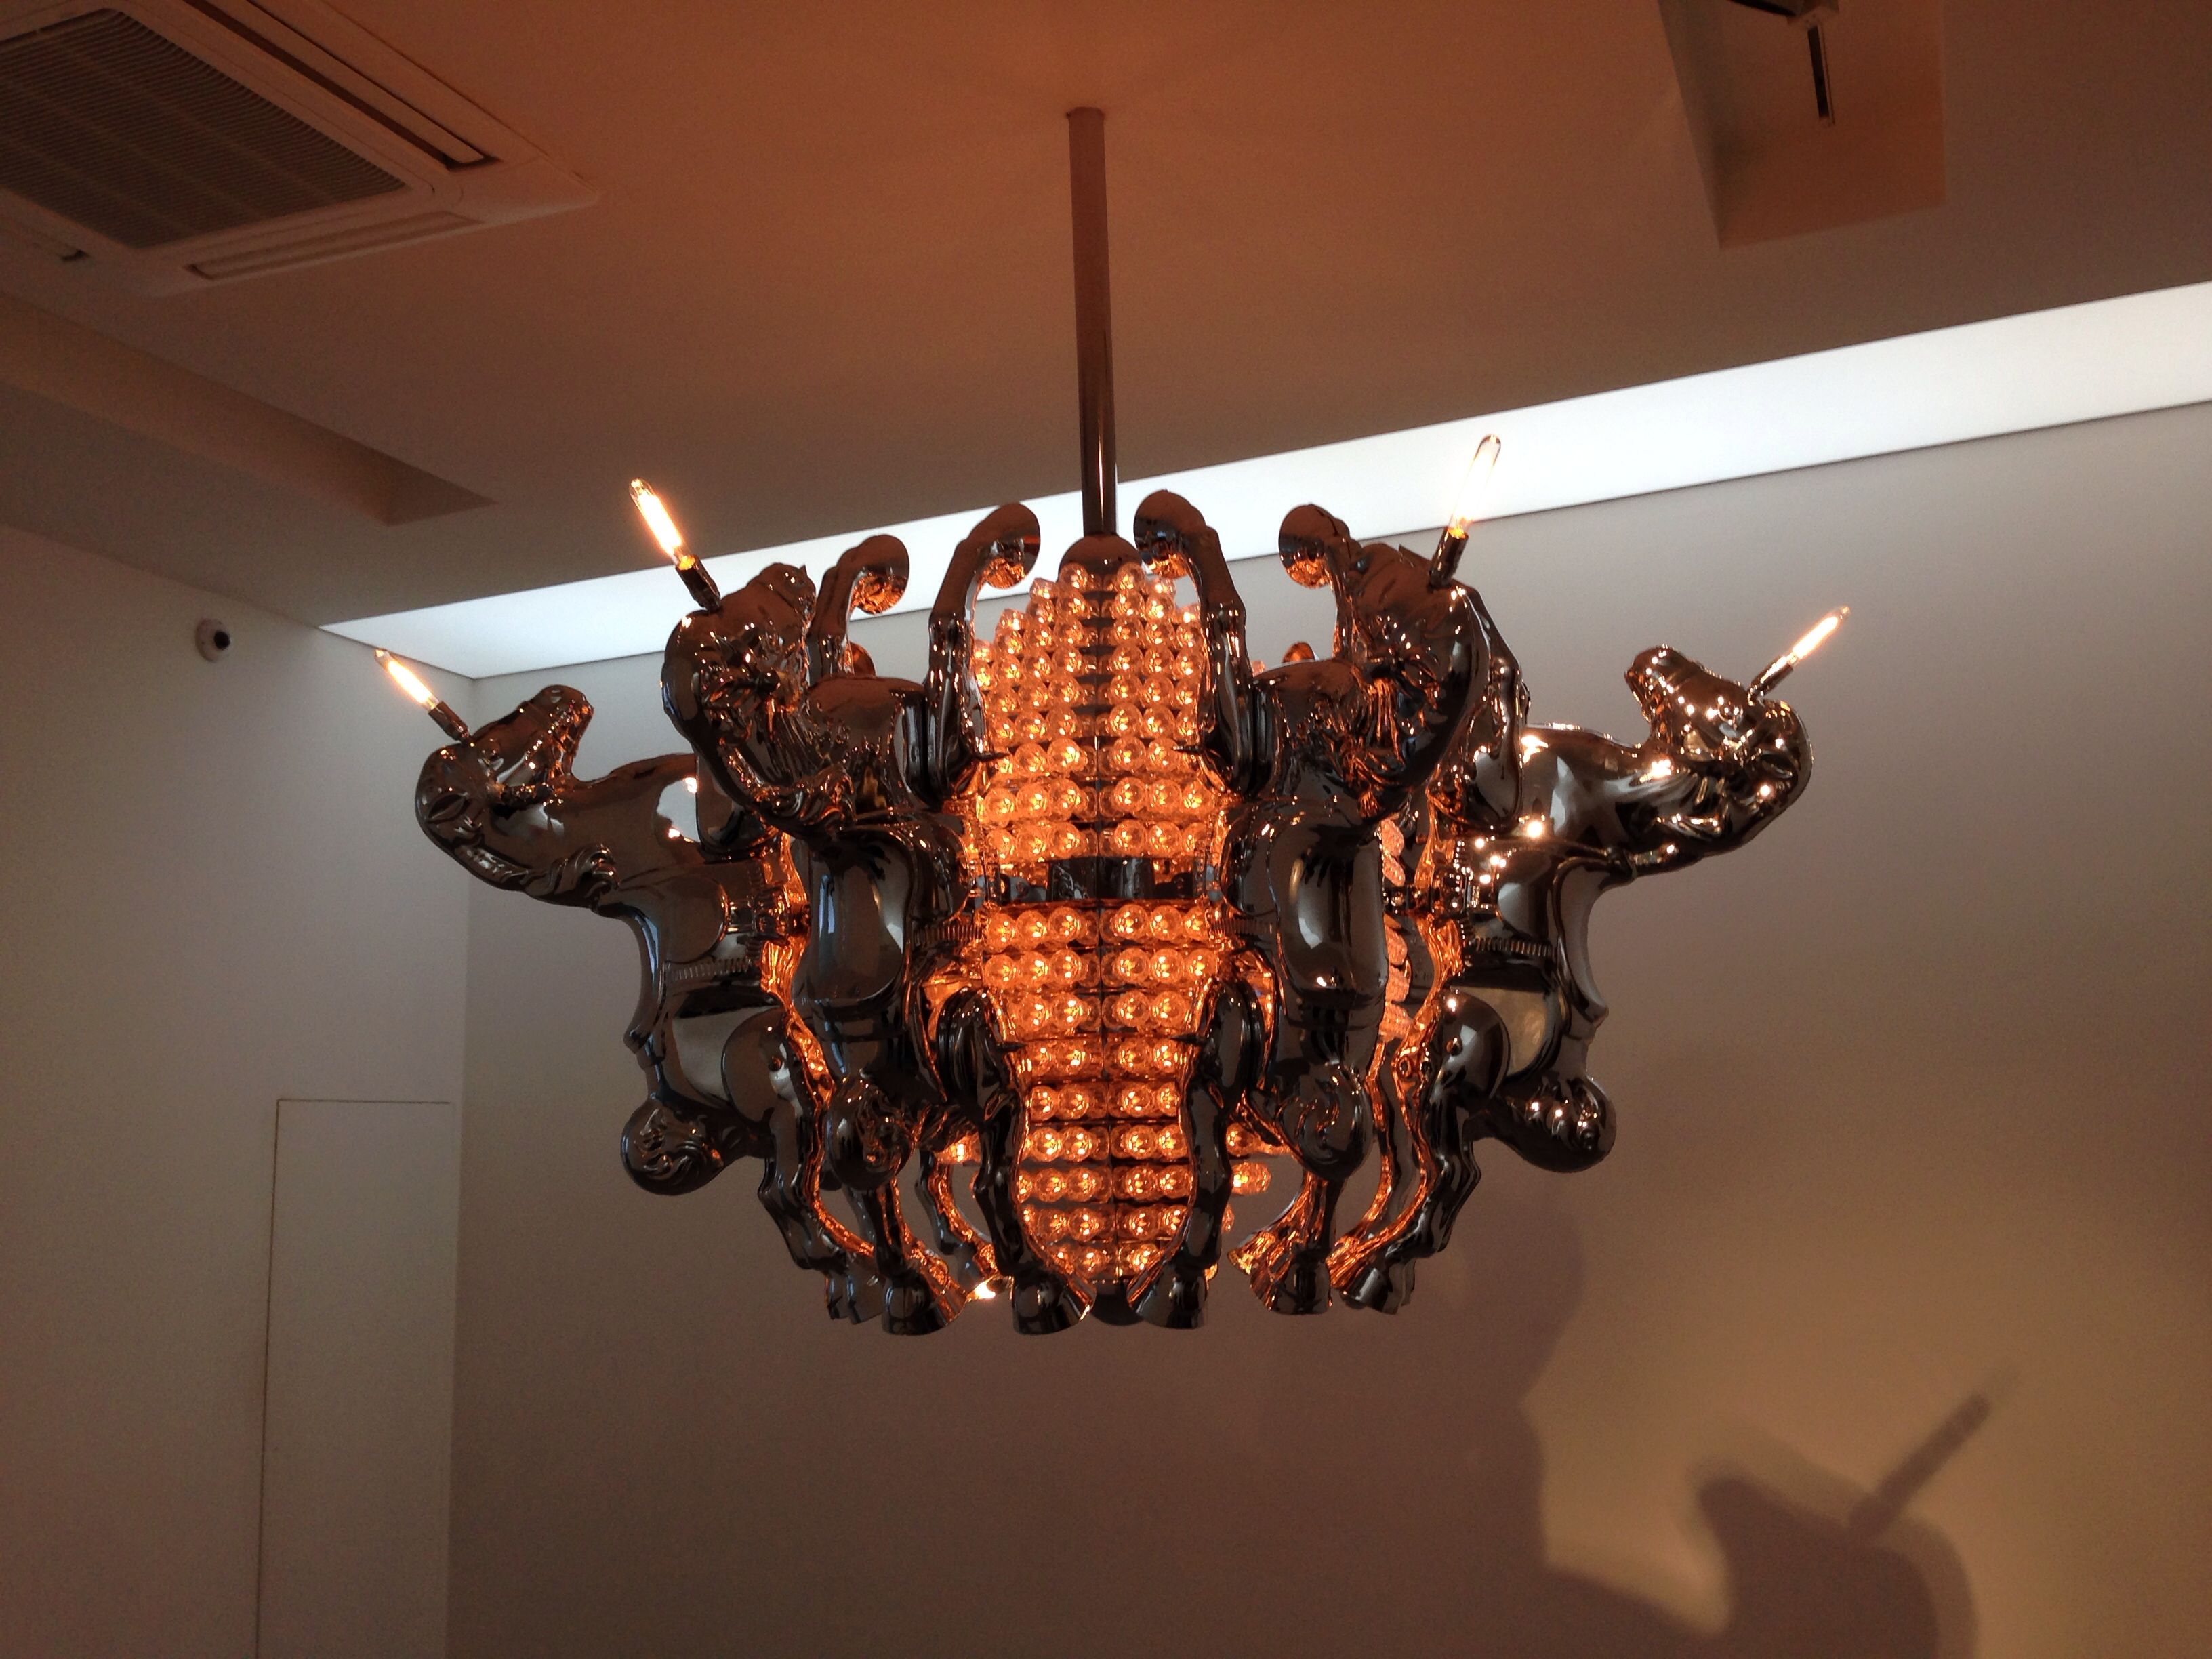 Prairie king chandelier by stuart haygarth now on show at prairie king chandelier by stuart haygarth now on show at carpenters workshop gallery paris arubaitofo Images